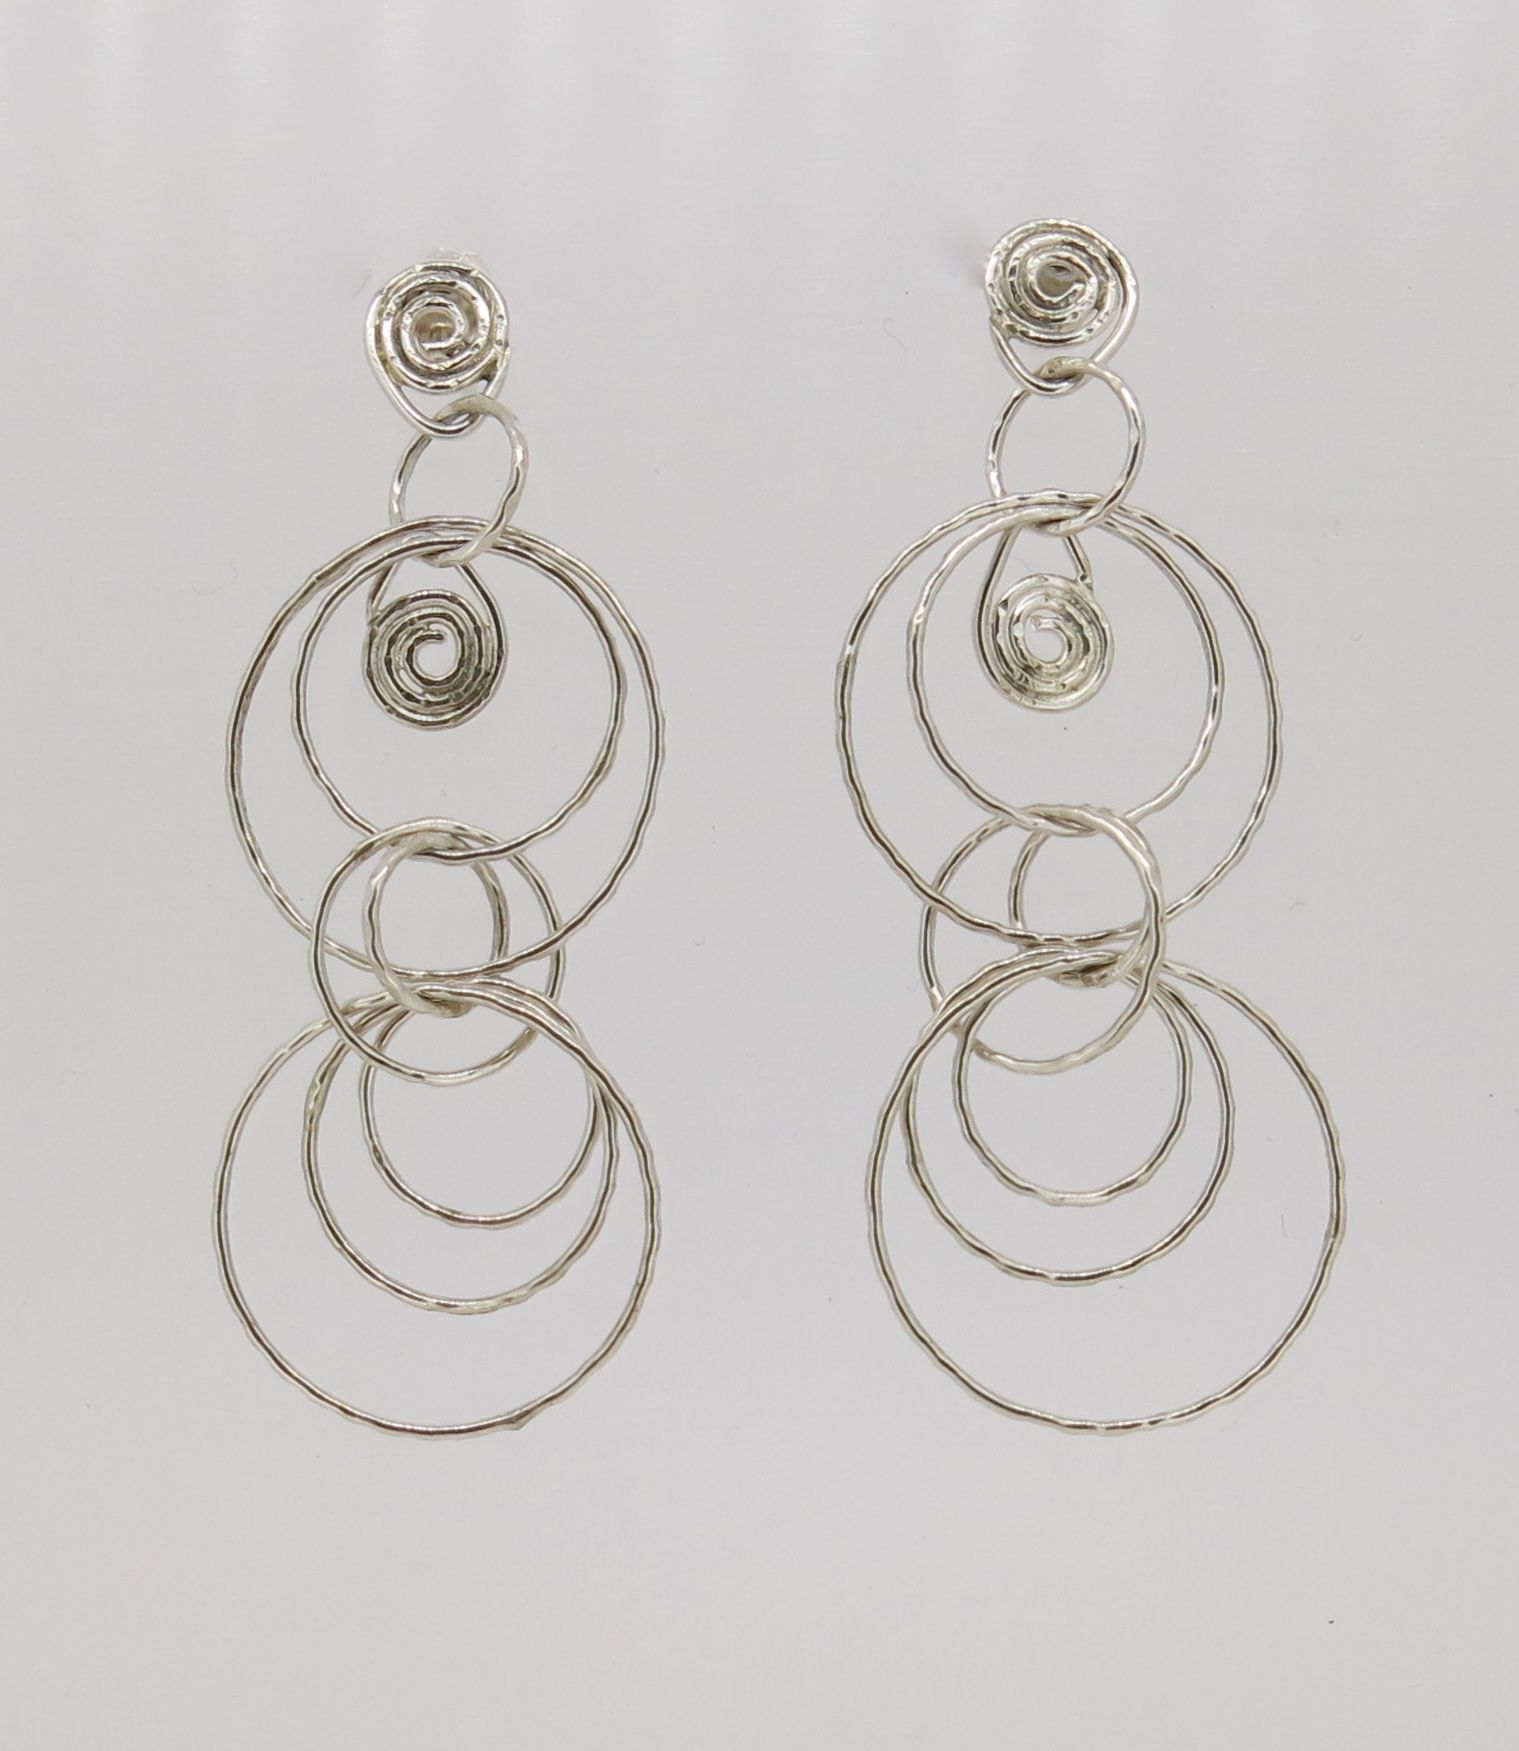 """""""Fine silver spirals"""" - these eye-catching earrings feature sterling silver rings (largest ring - 20mm diameter) and have a total drop of 60mm. Add them to your collection now for just $70(AUD) from mhoriginals.com.au ❤"""